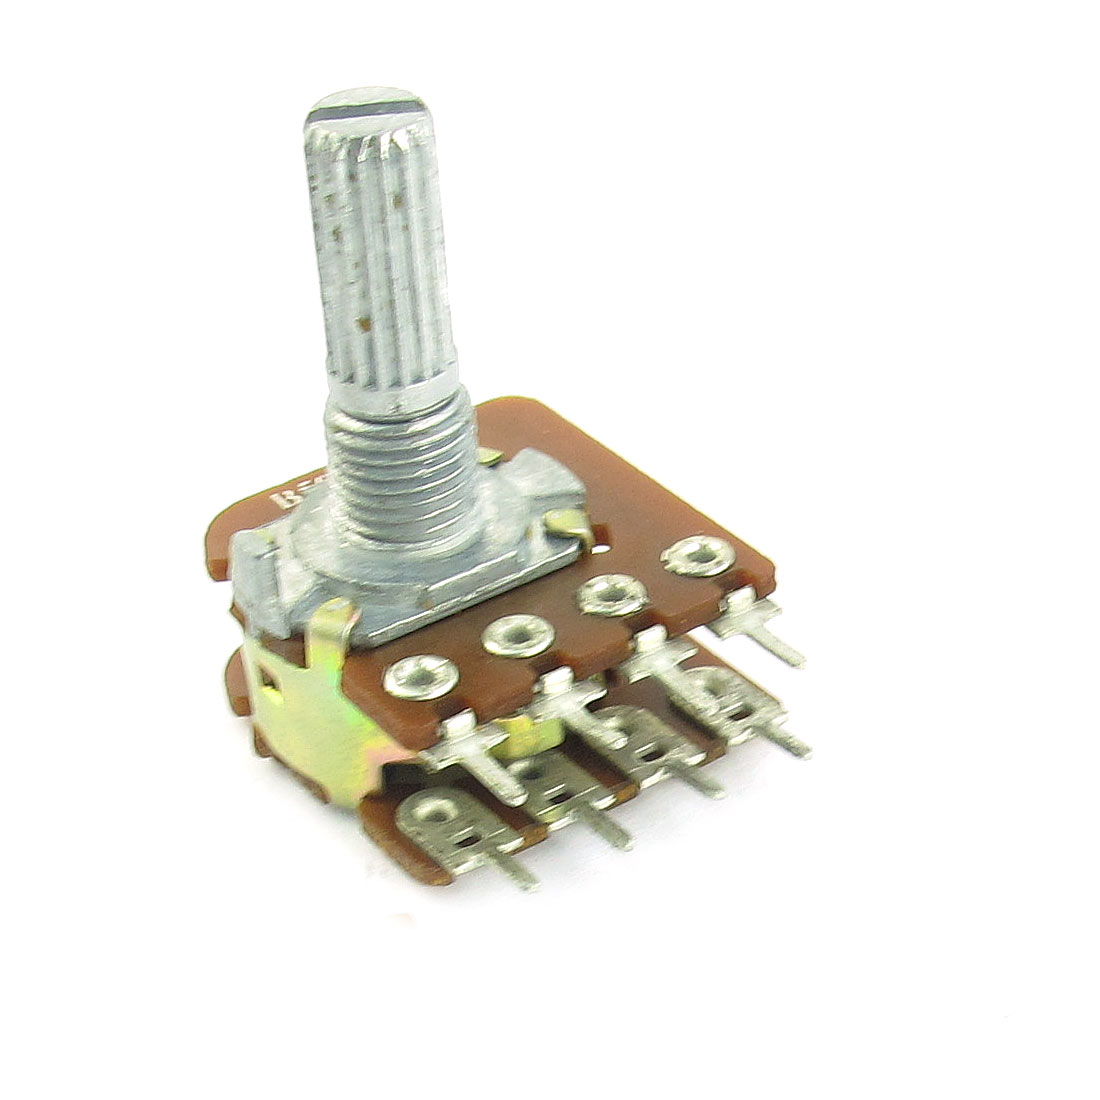 7mm Thread 6mm Knurled Shaft 8-Terminal Dual Layer Linear Type Top Adjustable Rotary Potentiometer B50K 50K Ohm